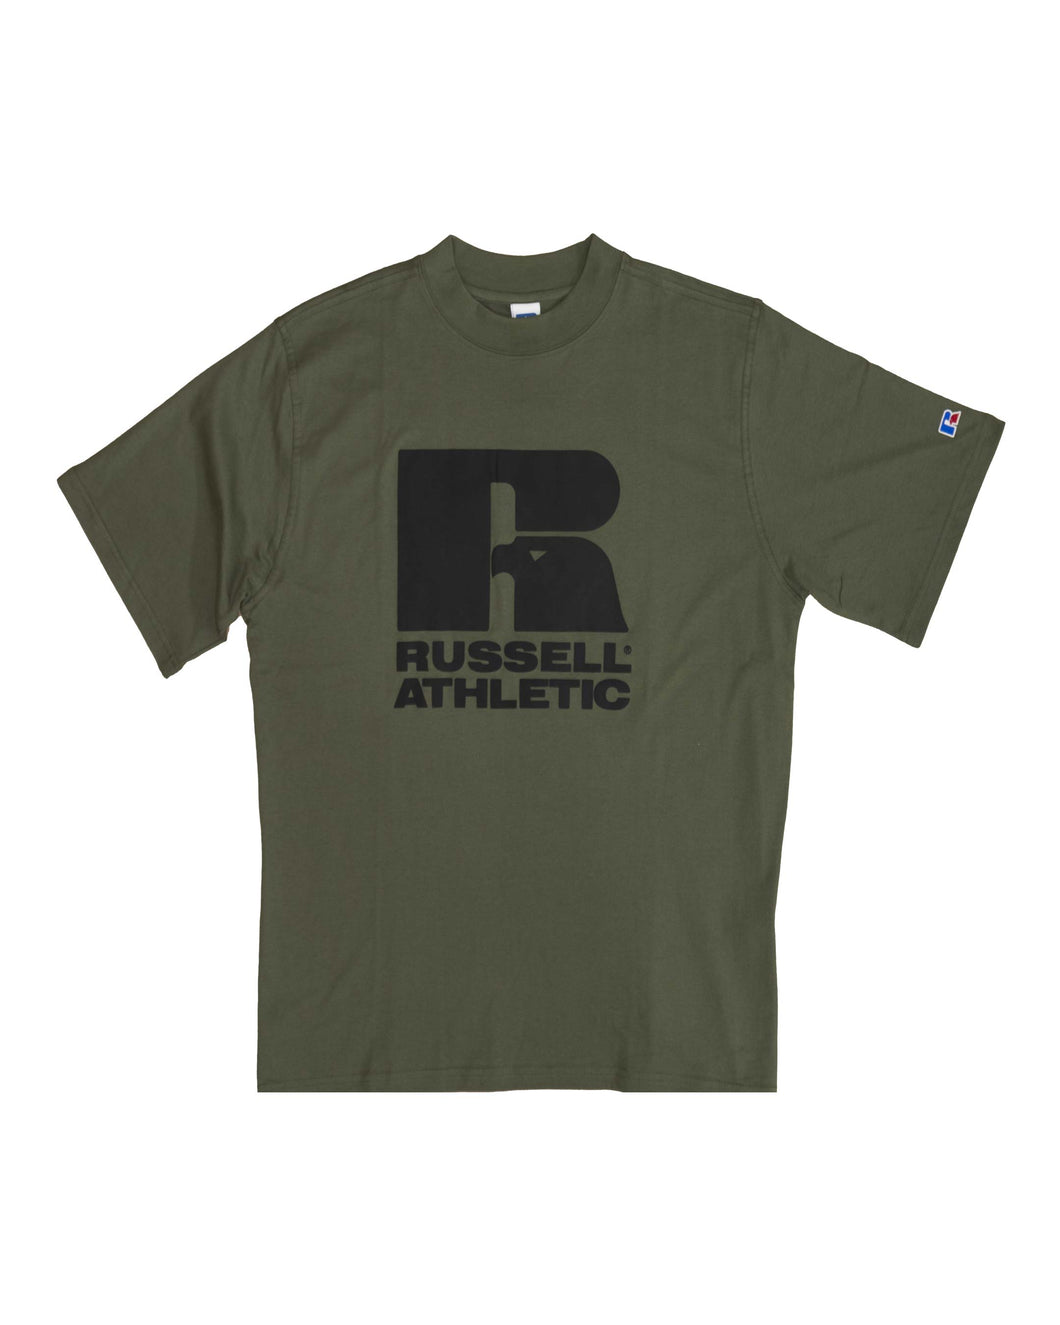 Russell T-Shirt Crew Neck Short Sleeve Tee Green/Black